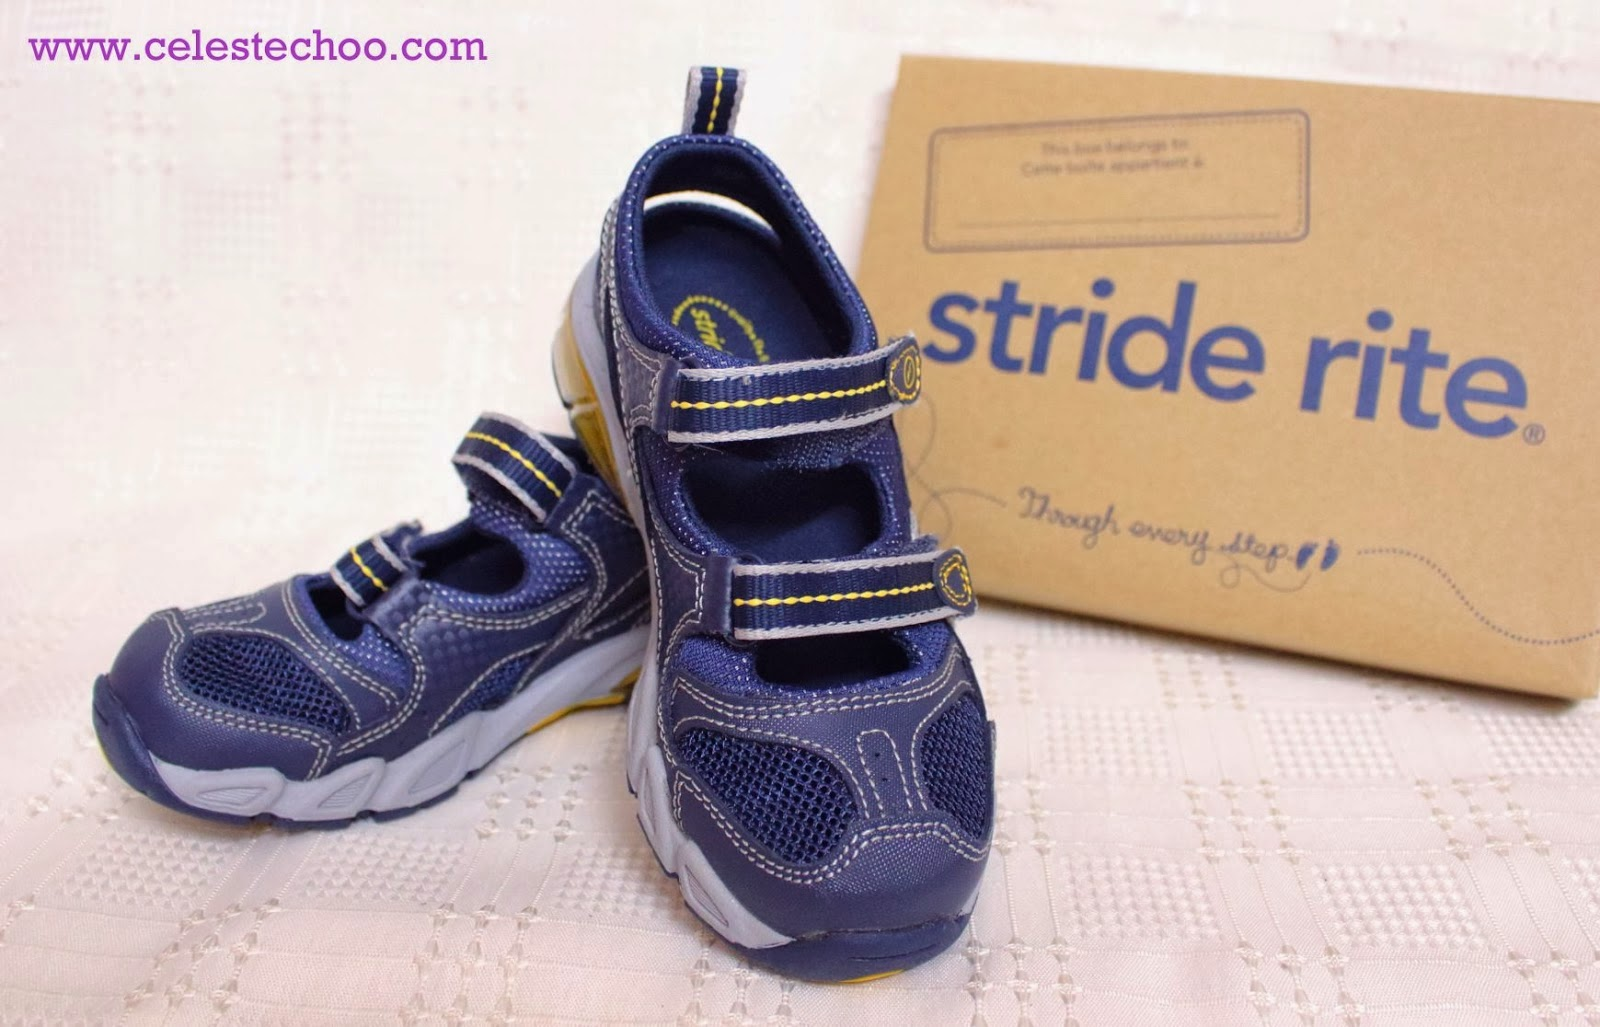 top-kids-shoes-brand-stride-rite